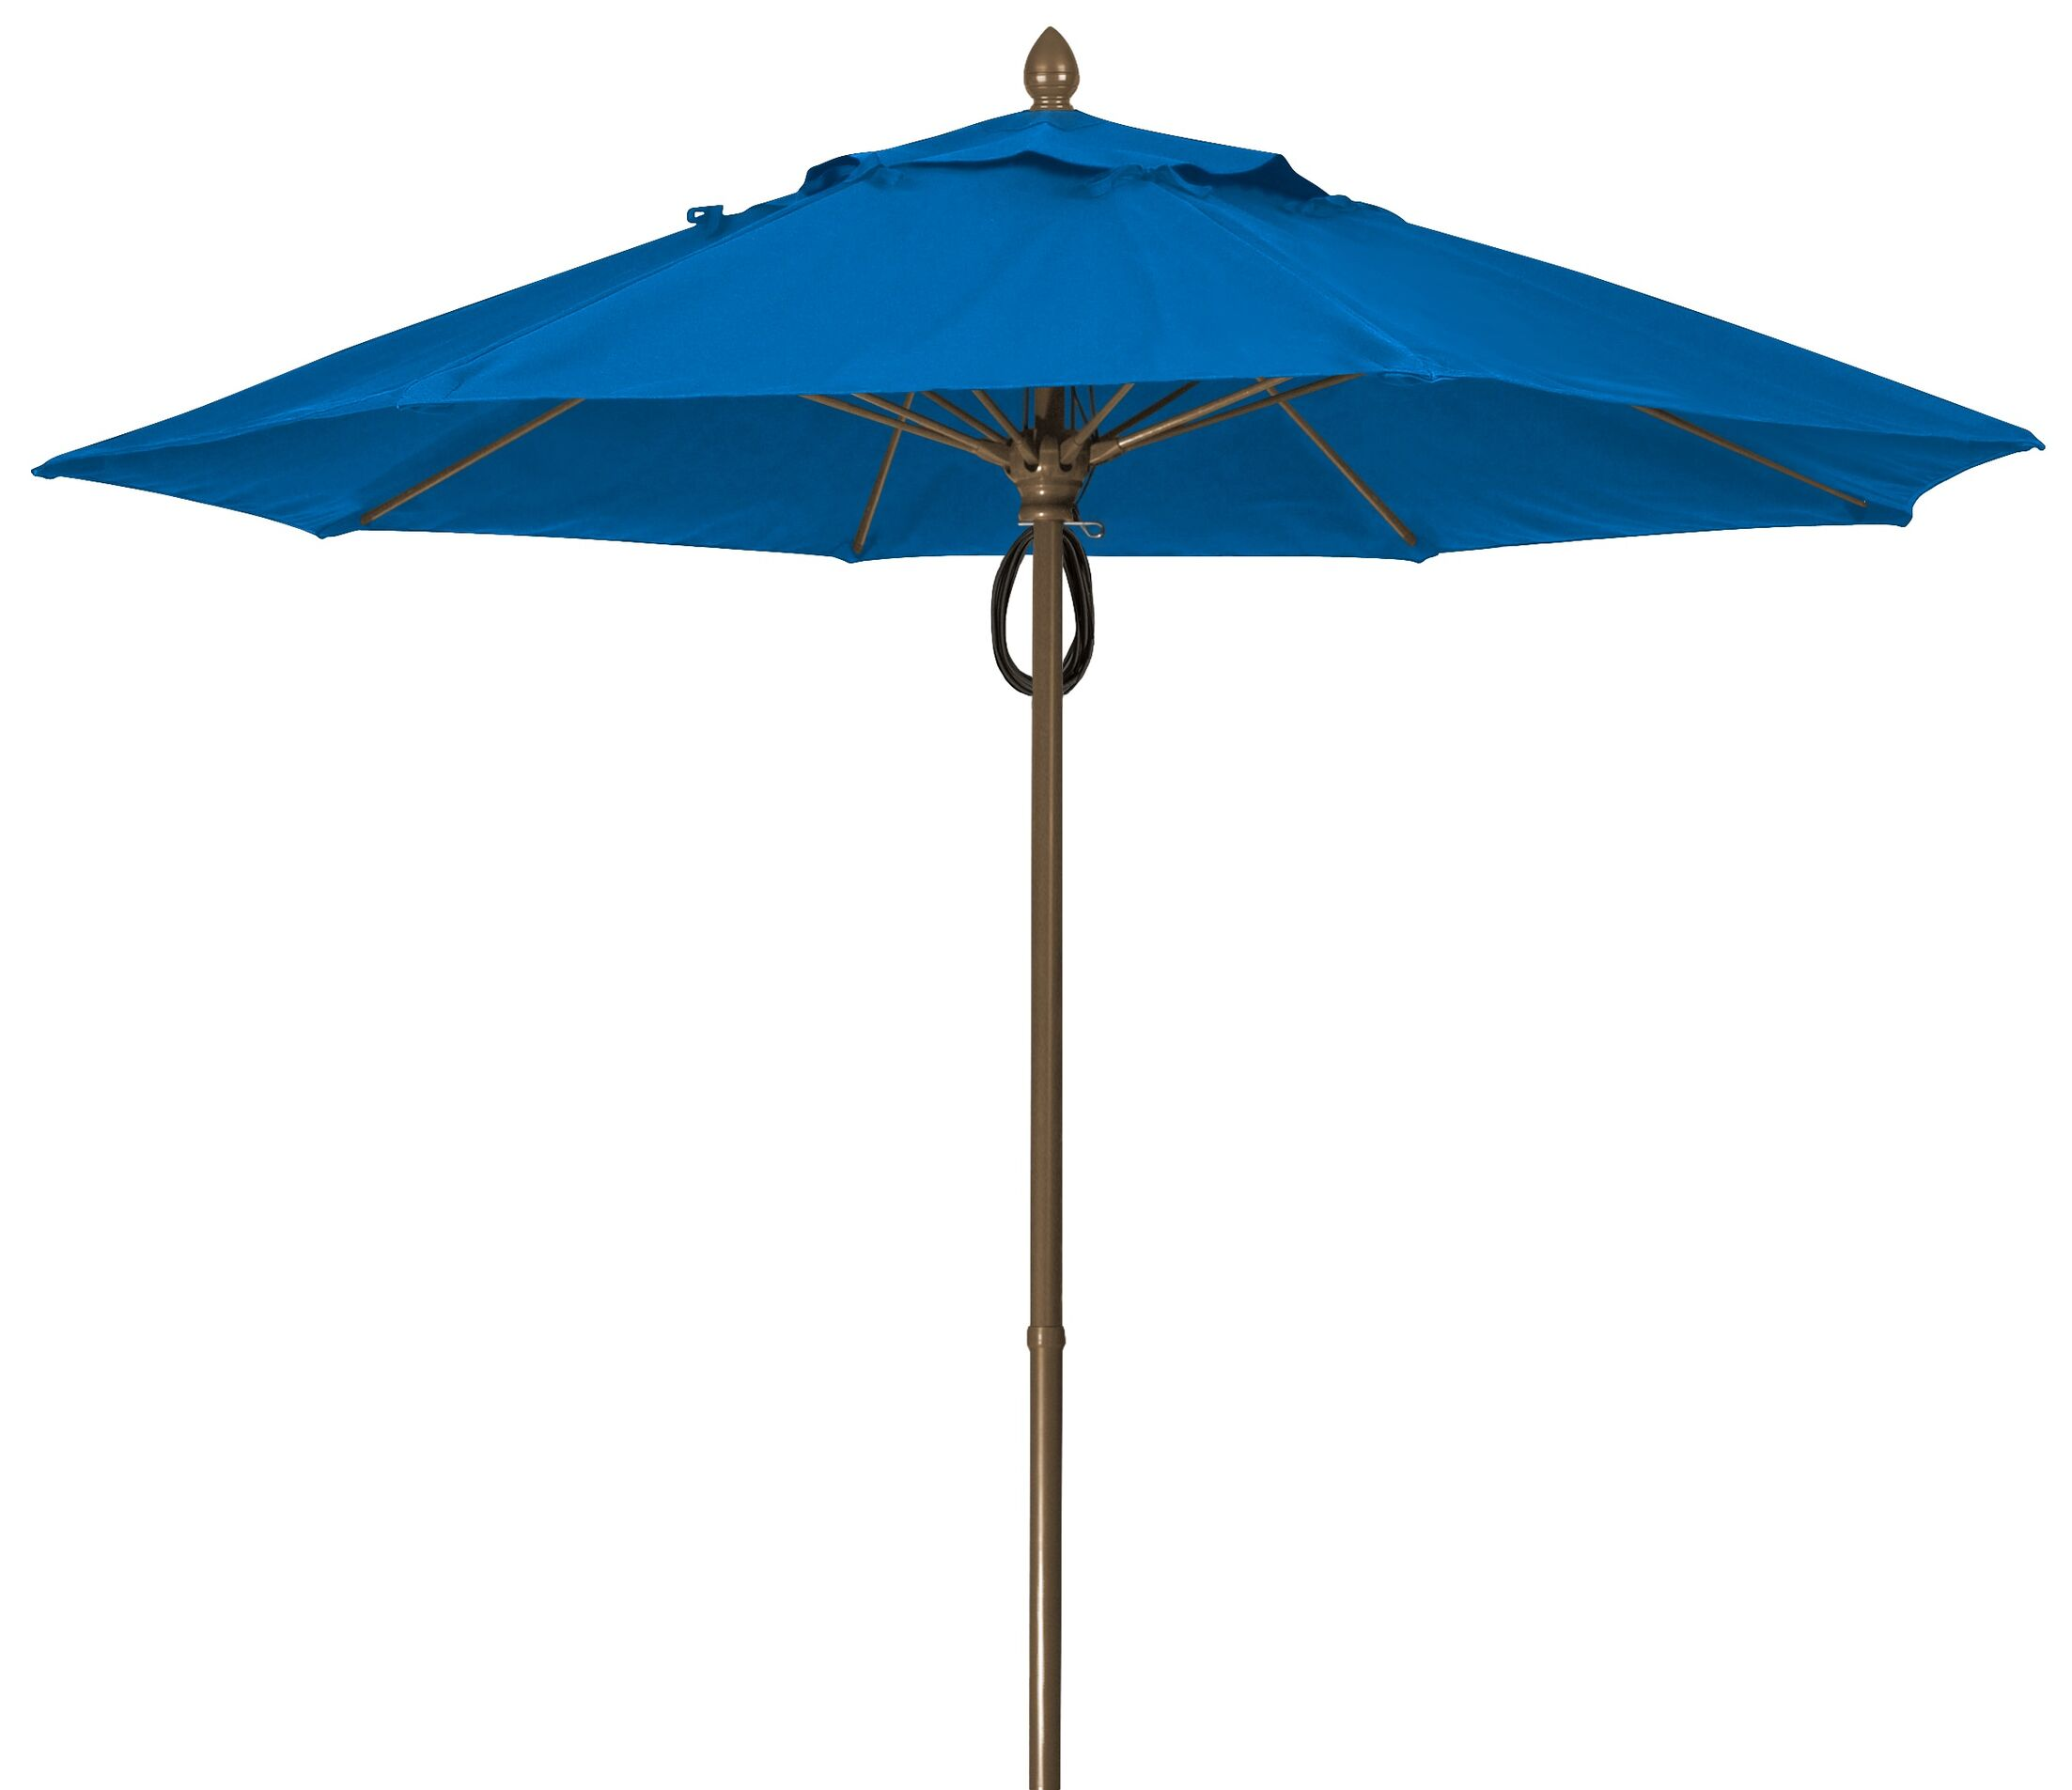 Prestige 9' Market Umbrella Fabric: Pacific Blue, Frame Finish: Champagne Bronze